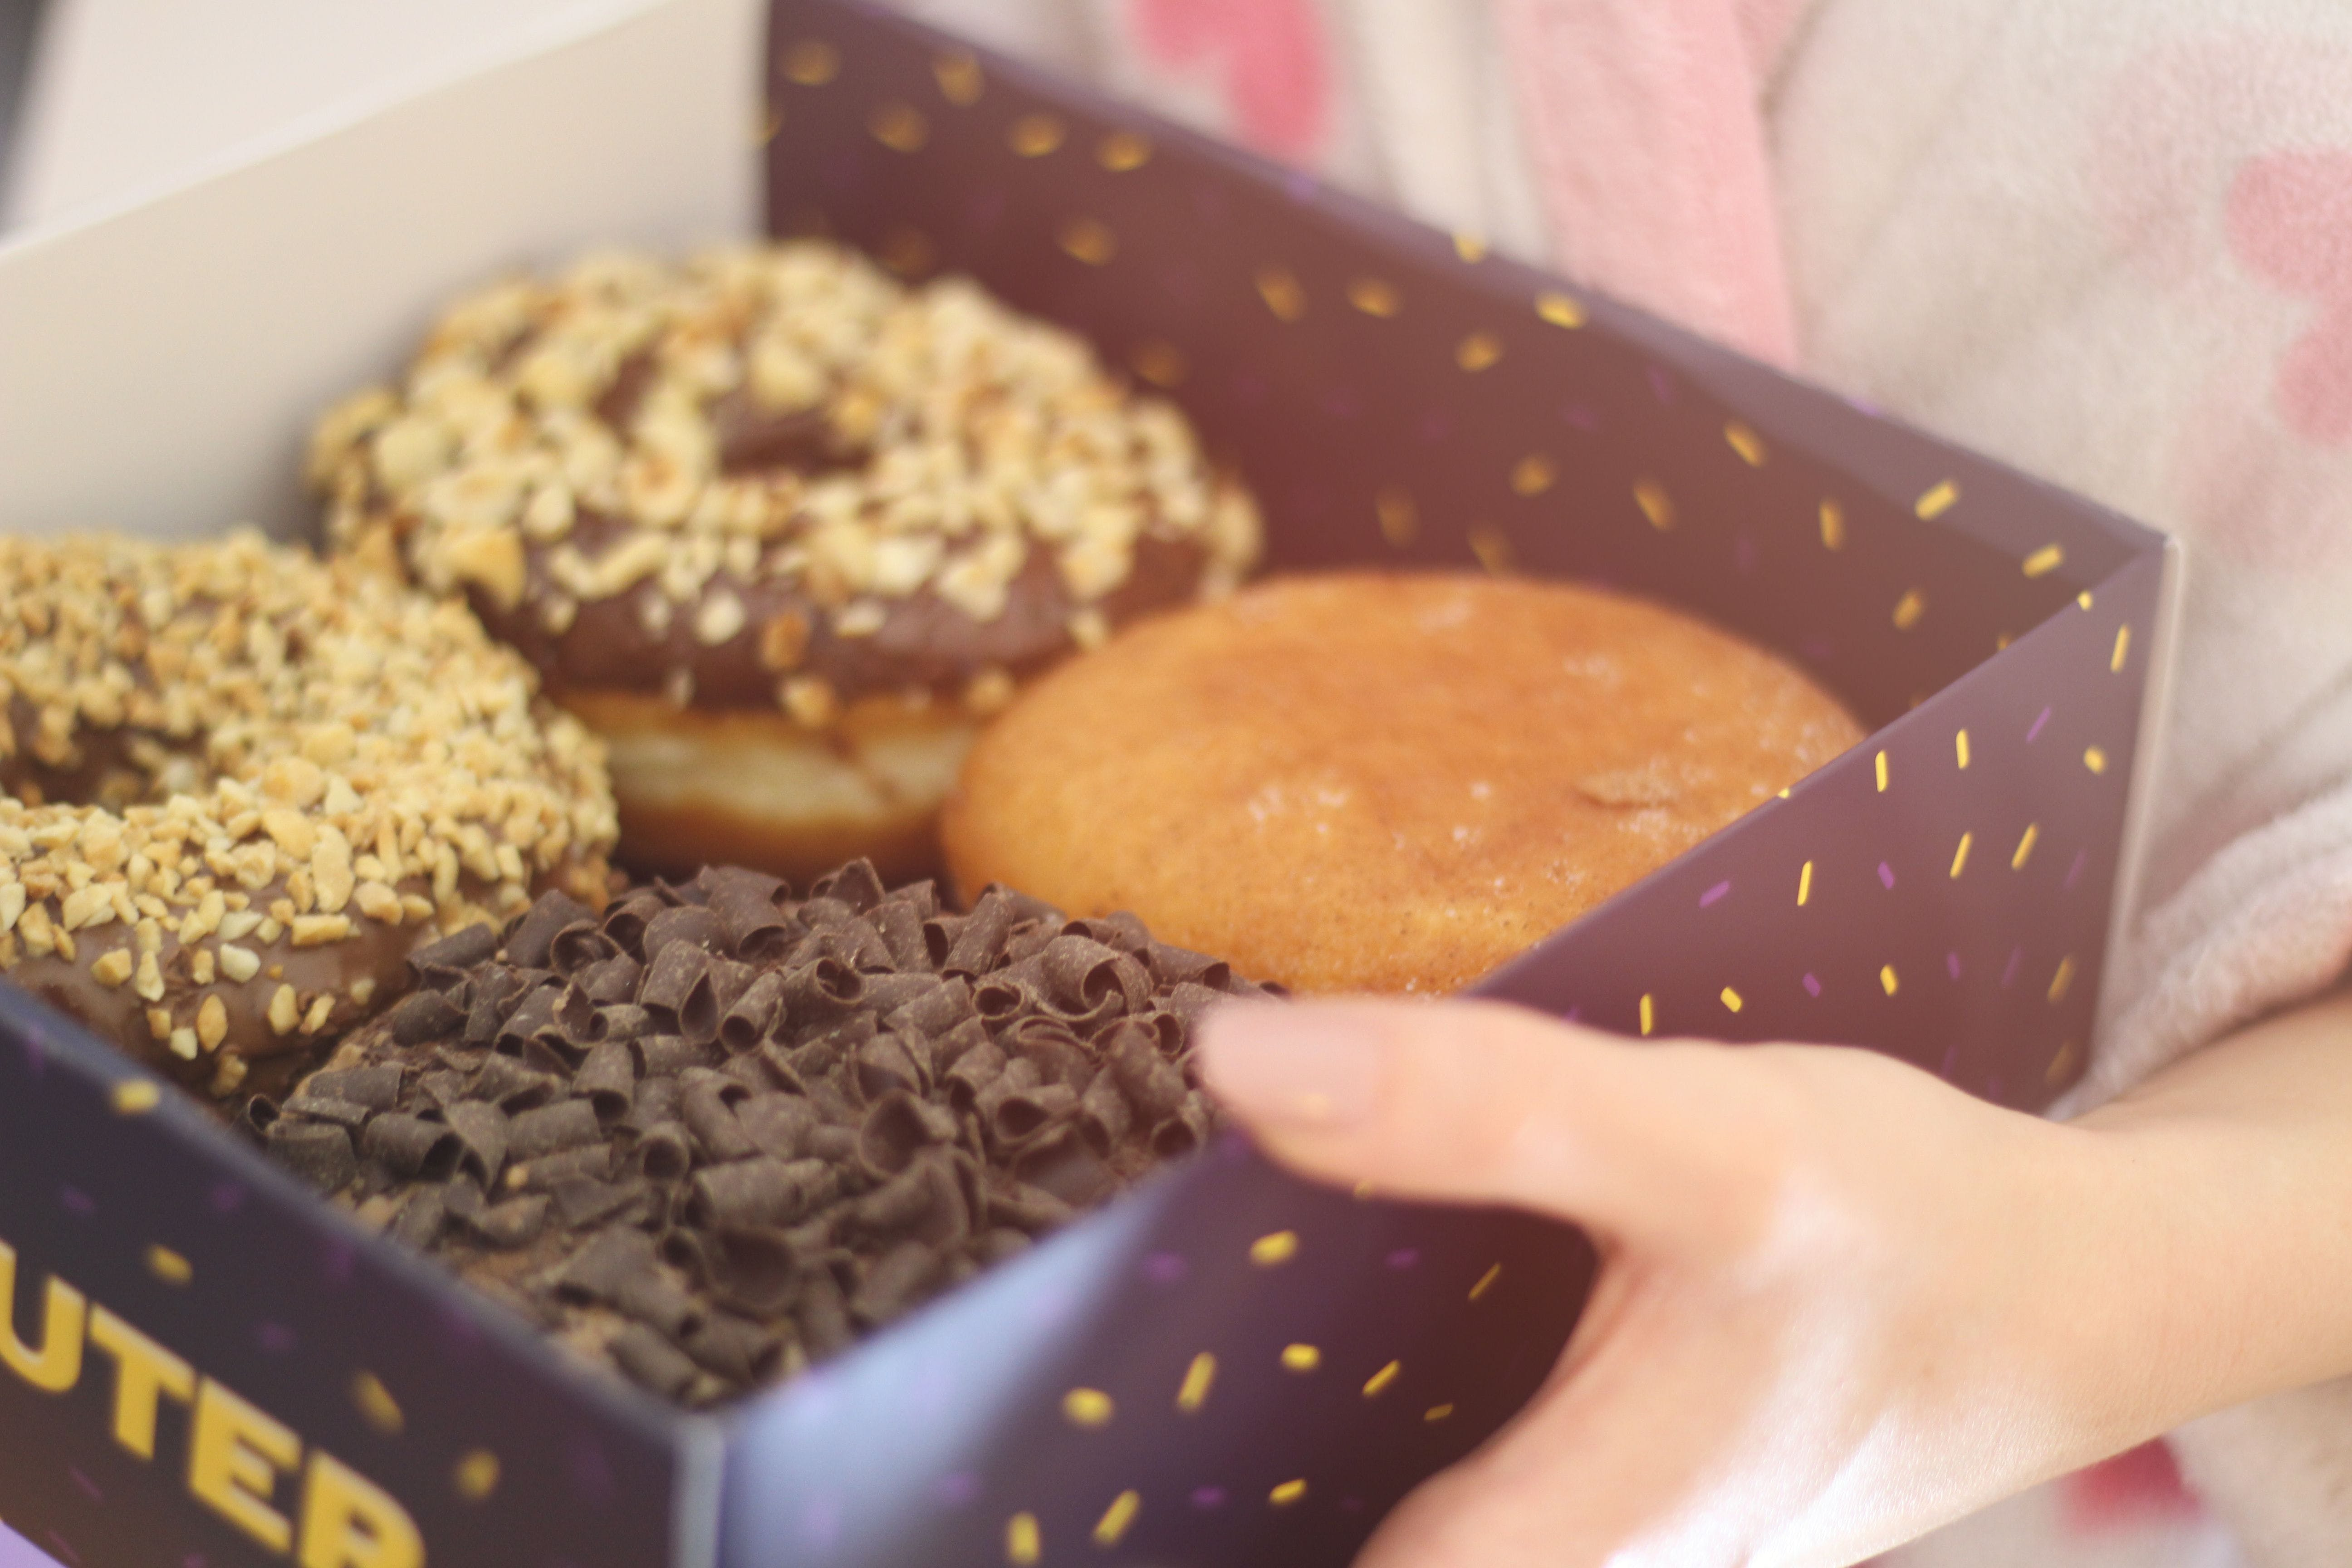 Person Holding Box of Donuts